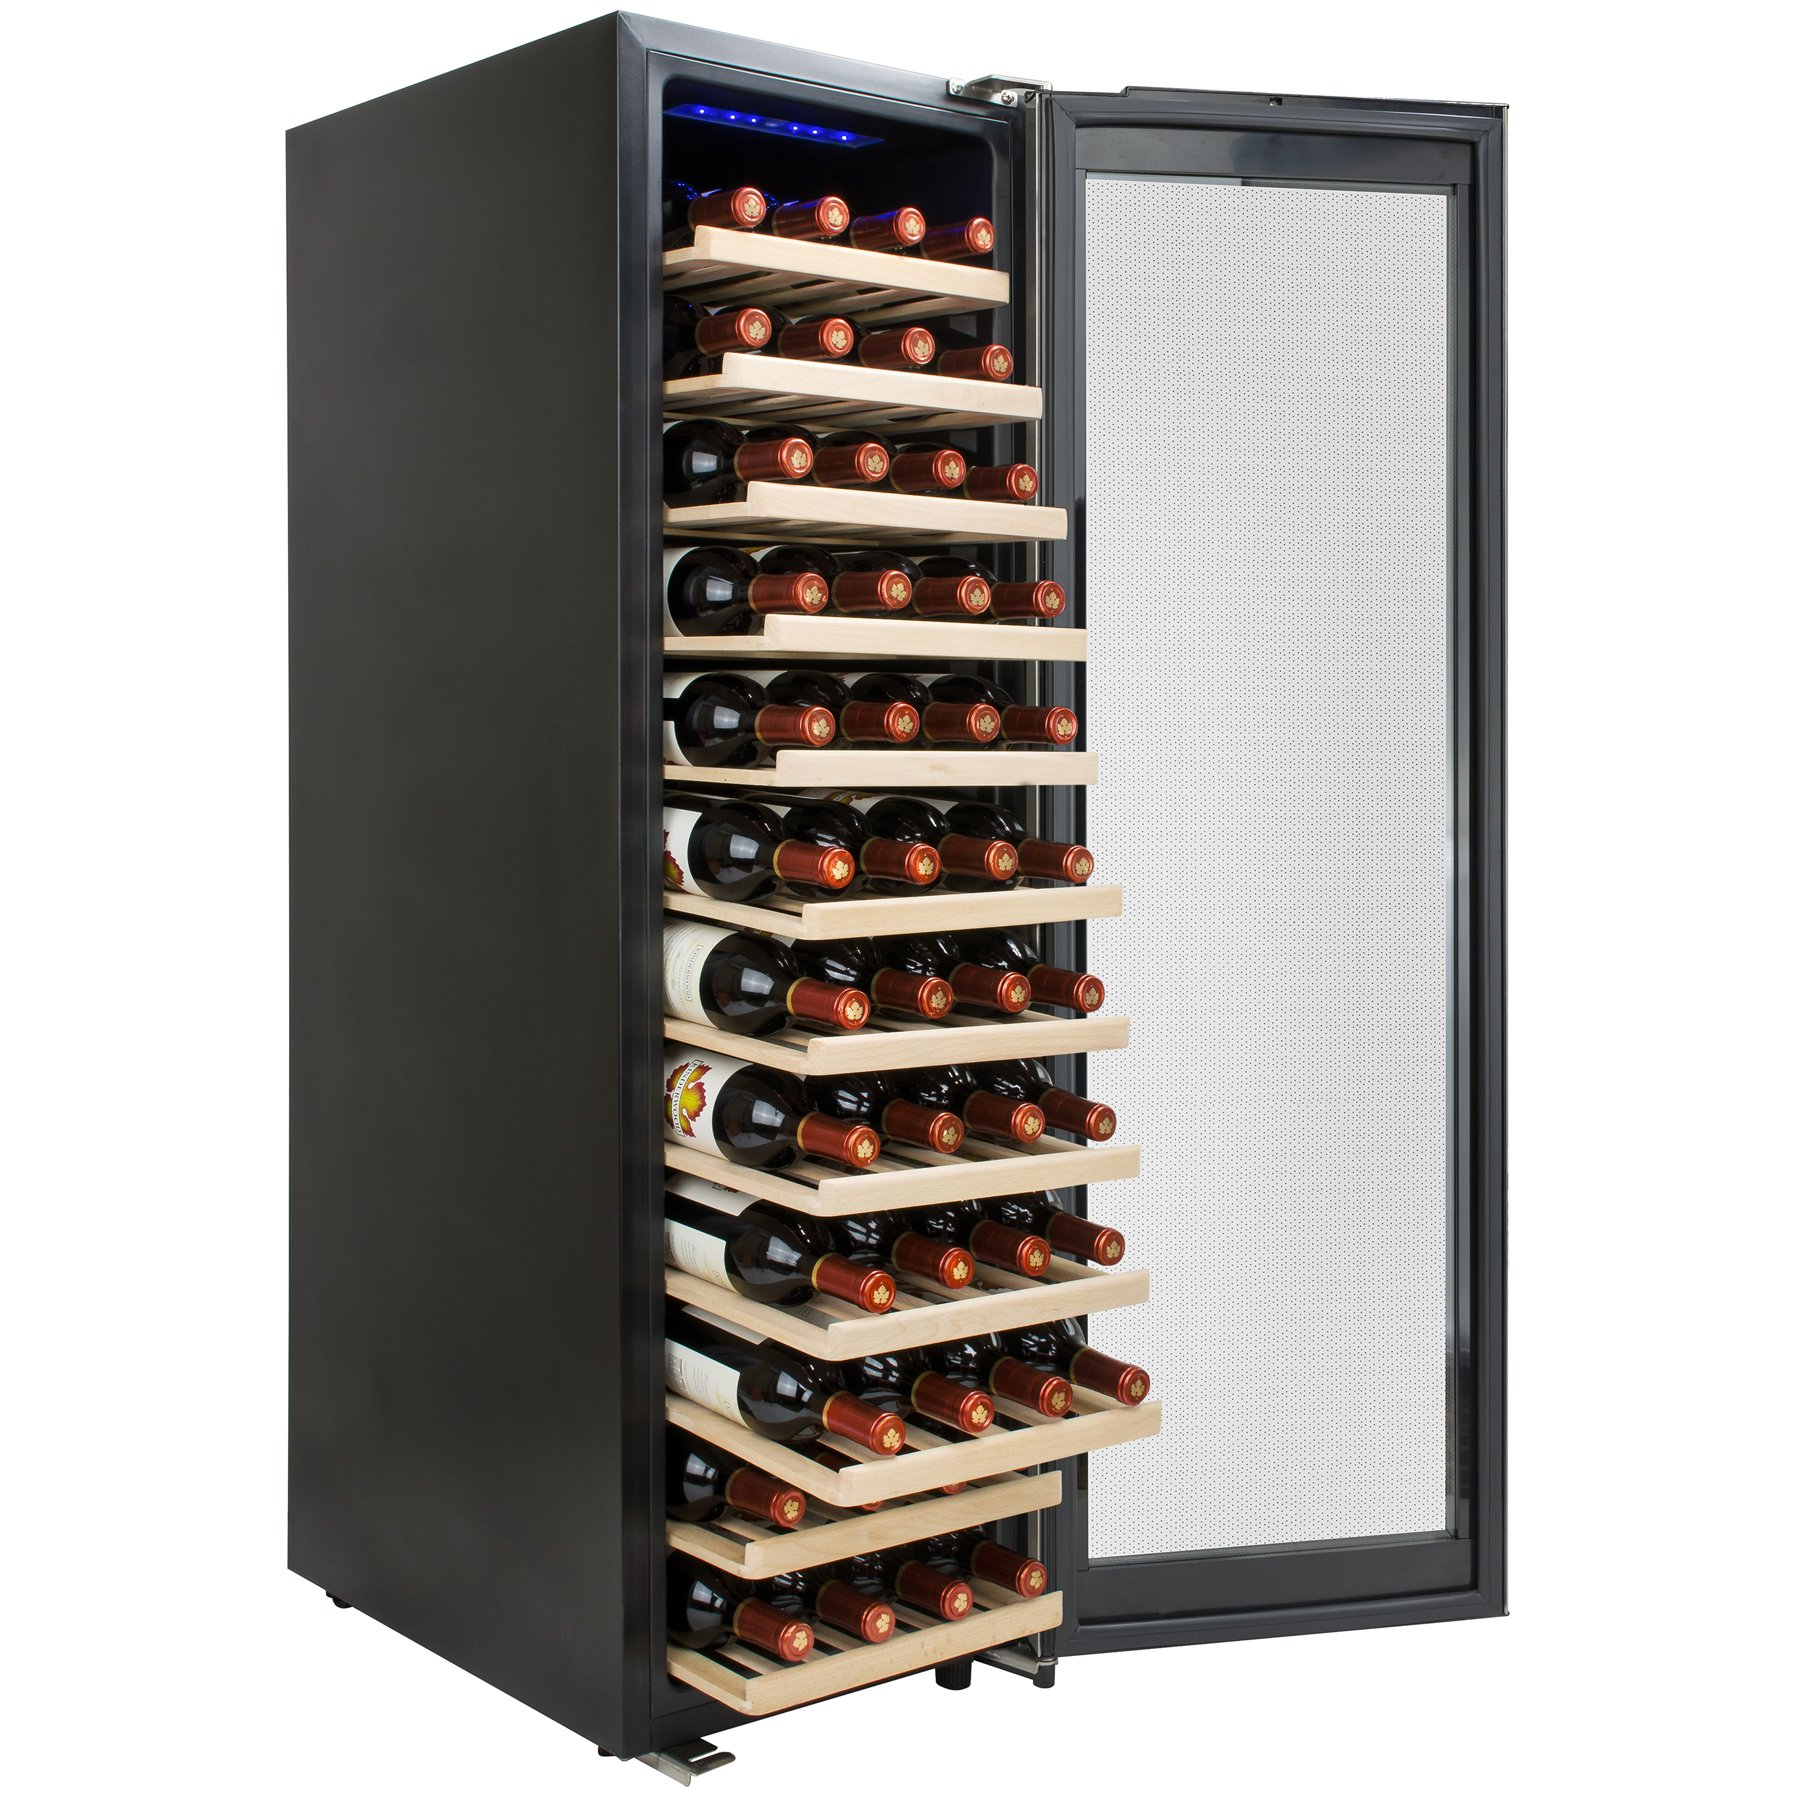 AKDY 58 Bottles Single Zone Compressor Within Freestanding Wine Cooler Refrigerator